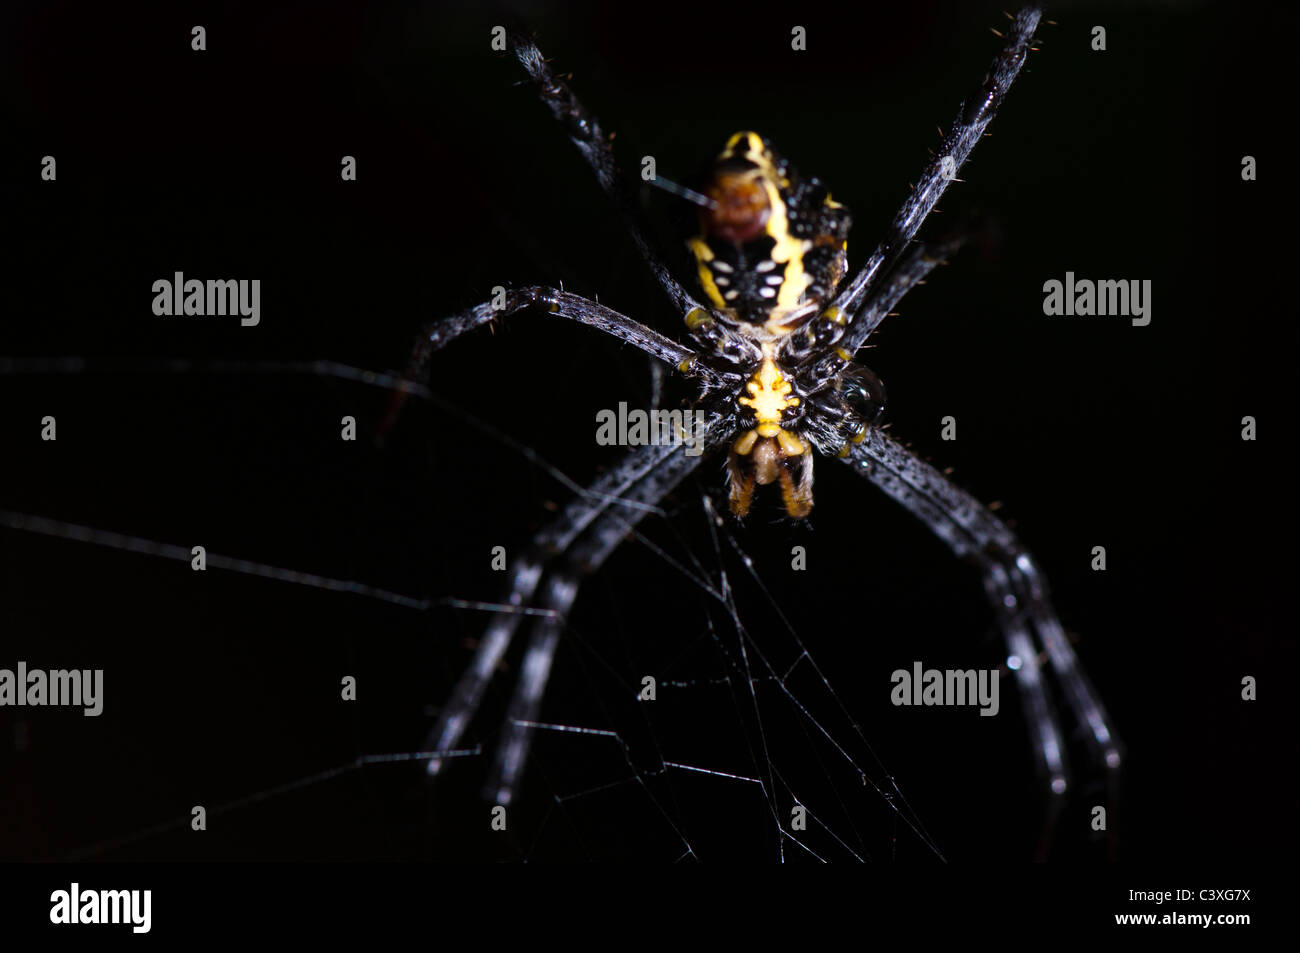 Spider closeup on black background - Stock Image